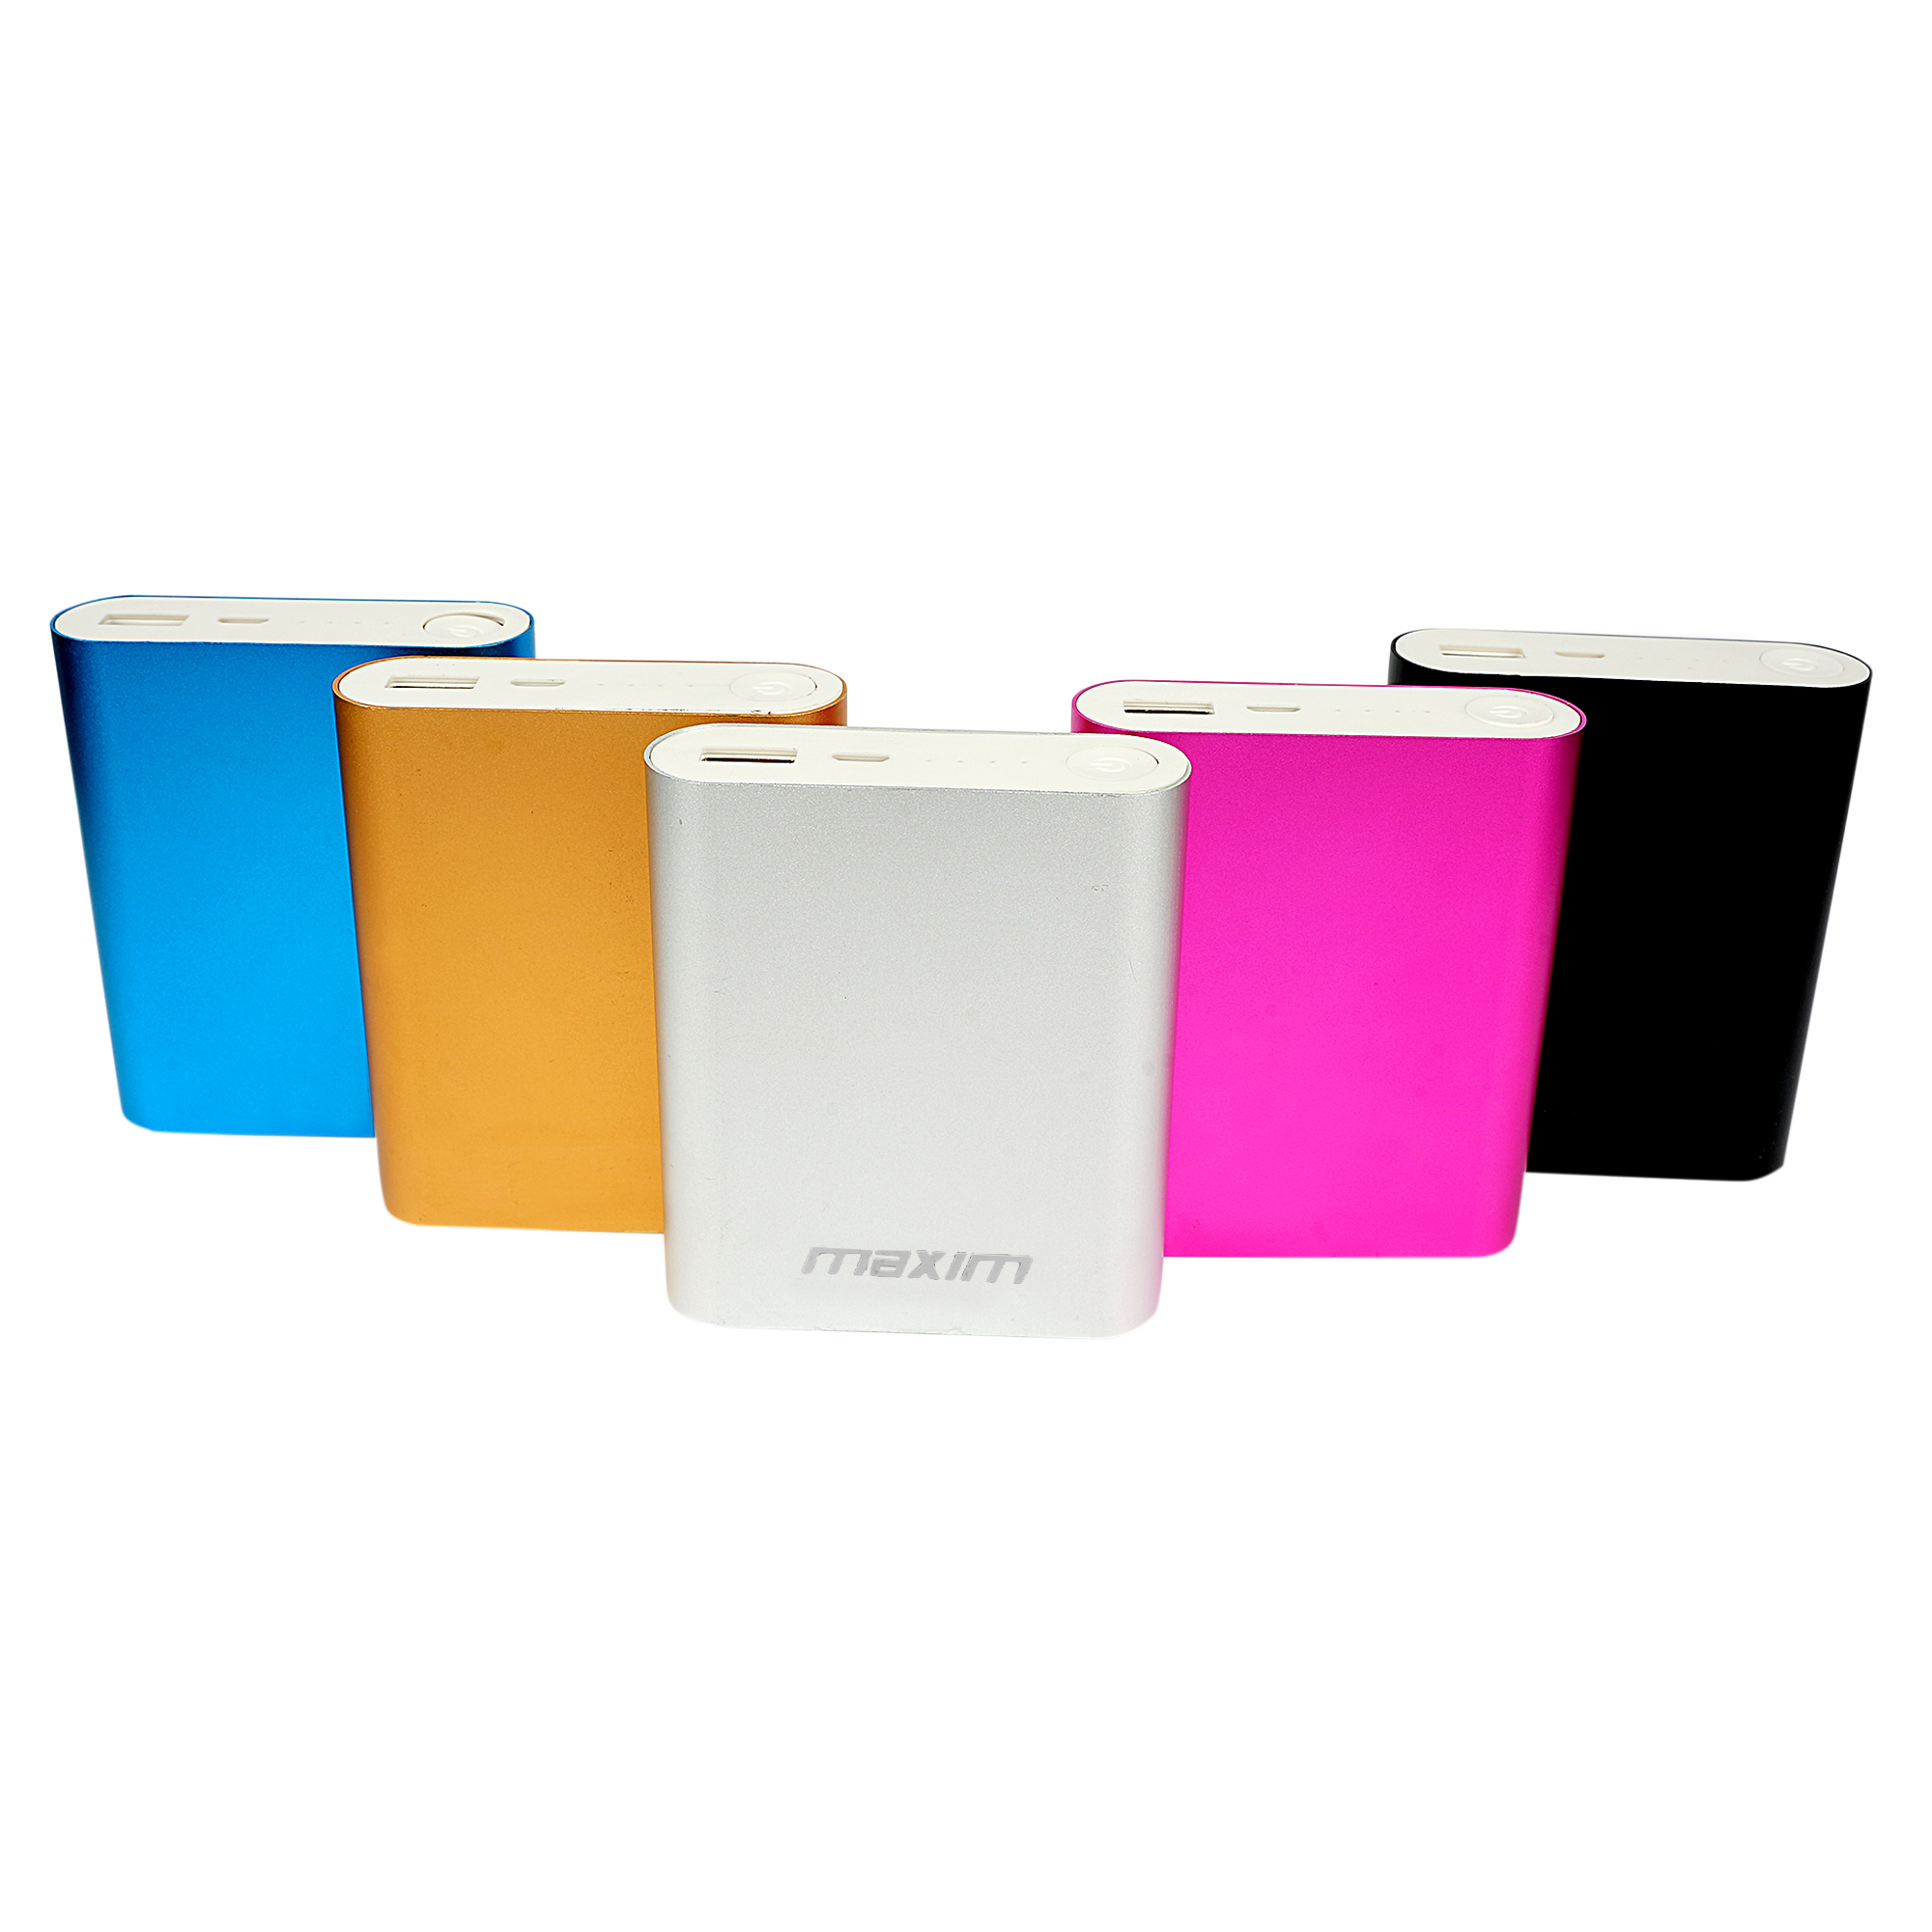 Maxim High Speed Charging 10400 Mah Power Bank  Assorted  With 3 Months Manufacturing Warranty